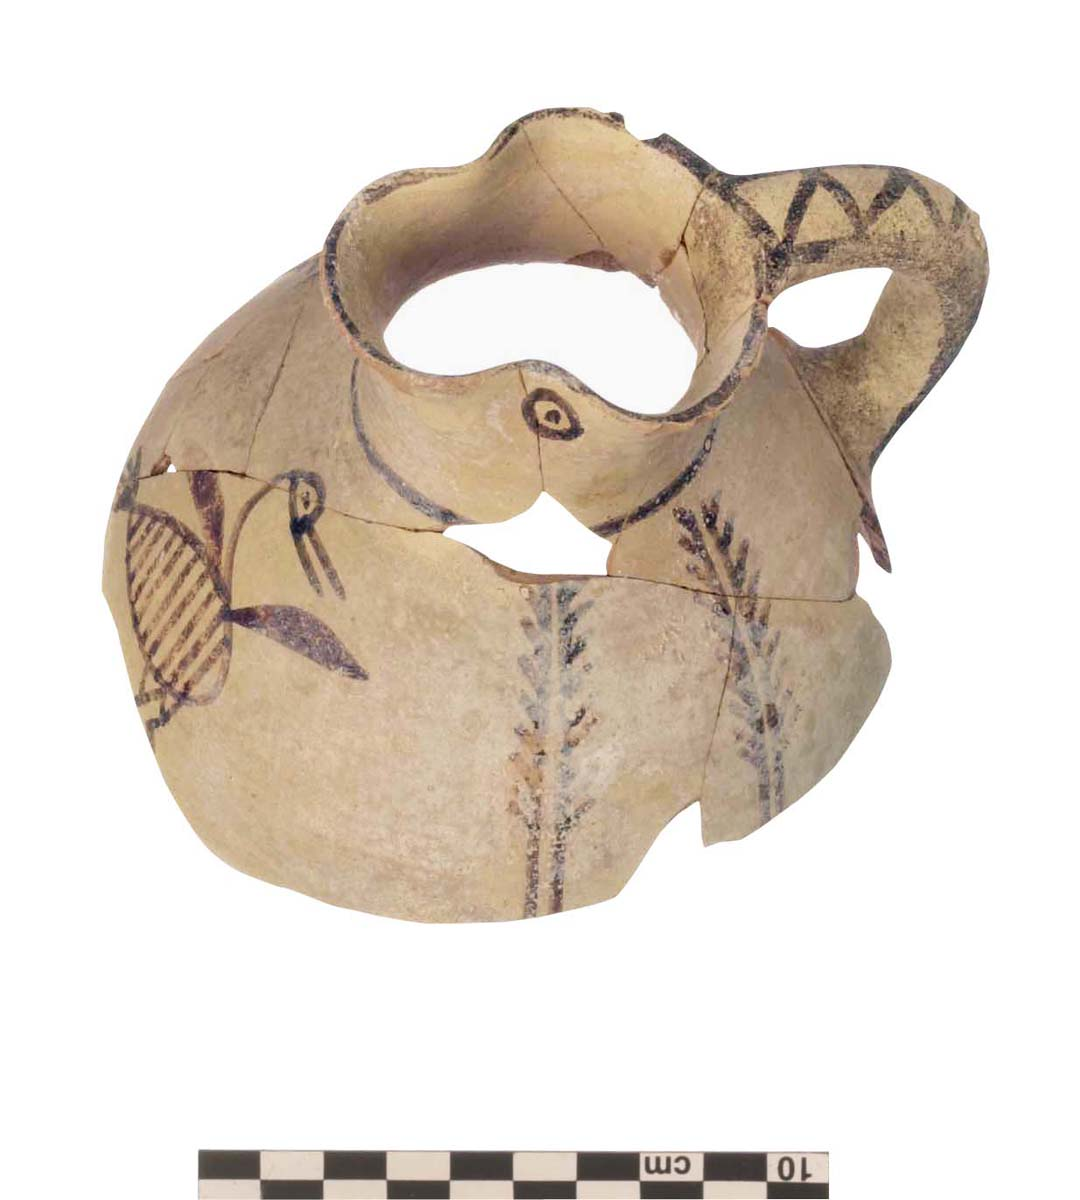 Bothros, Bichrome jug decorated with a bird (Ph. Collet / Archives EFA, N032-067)